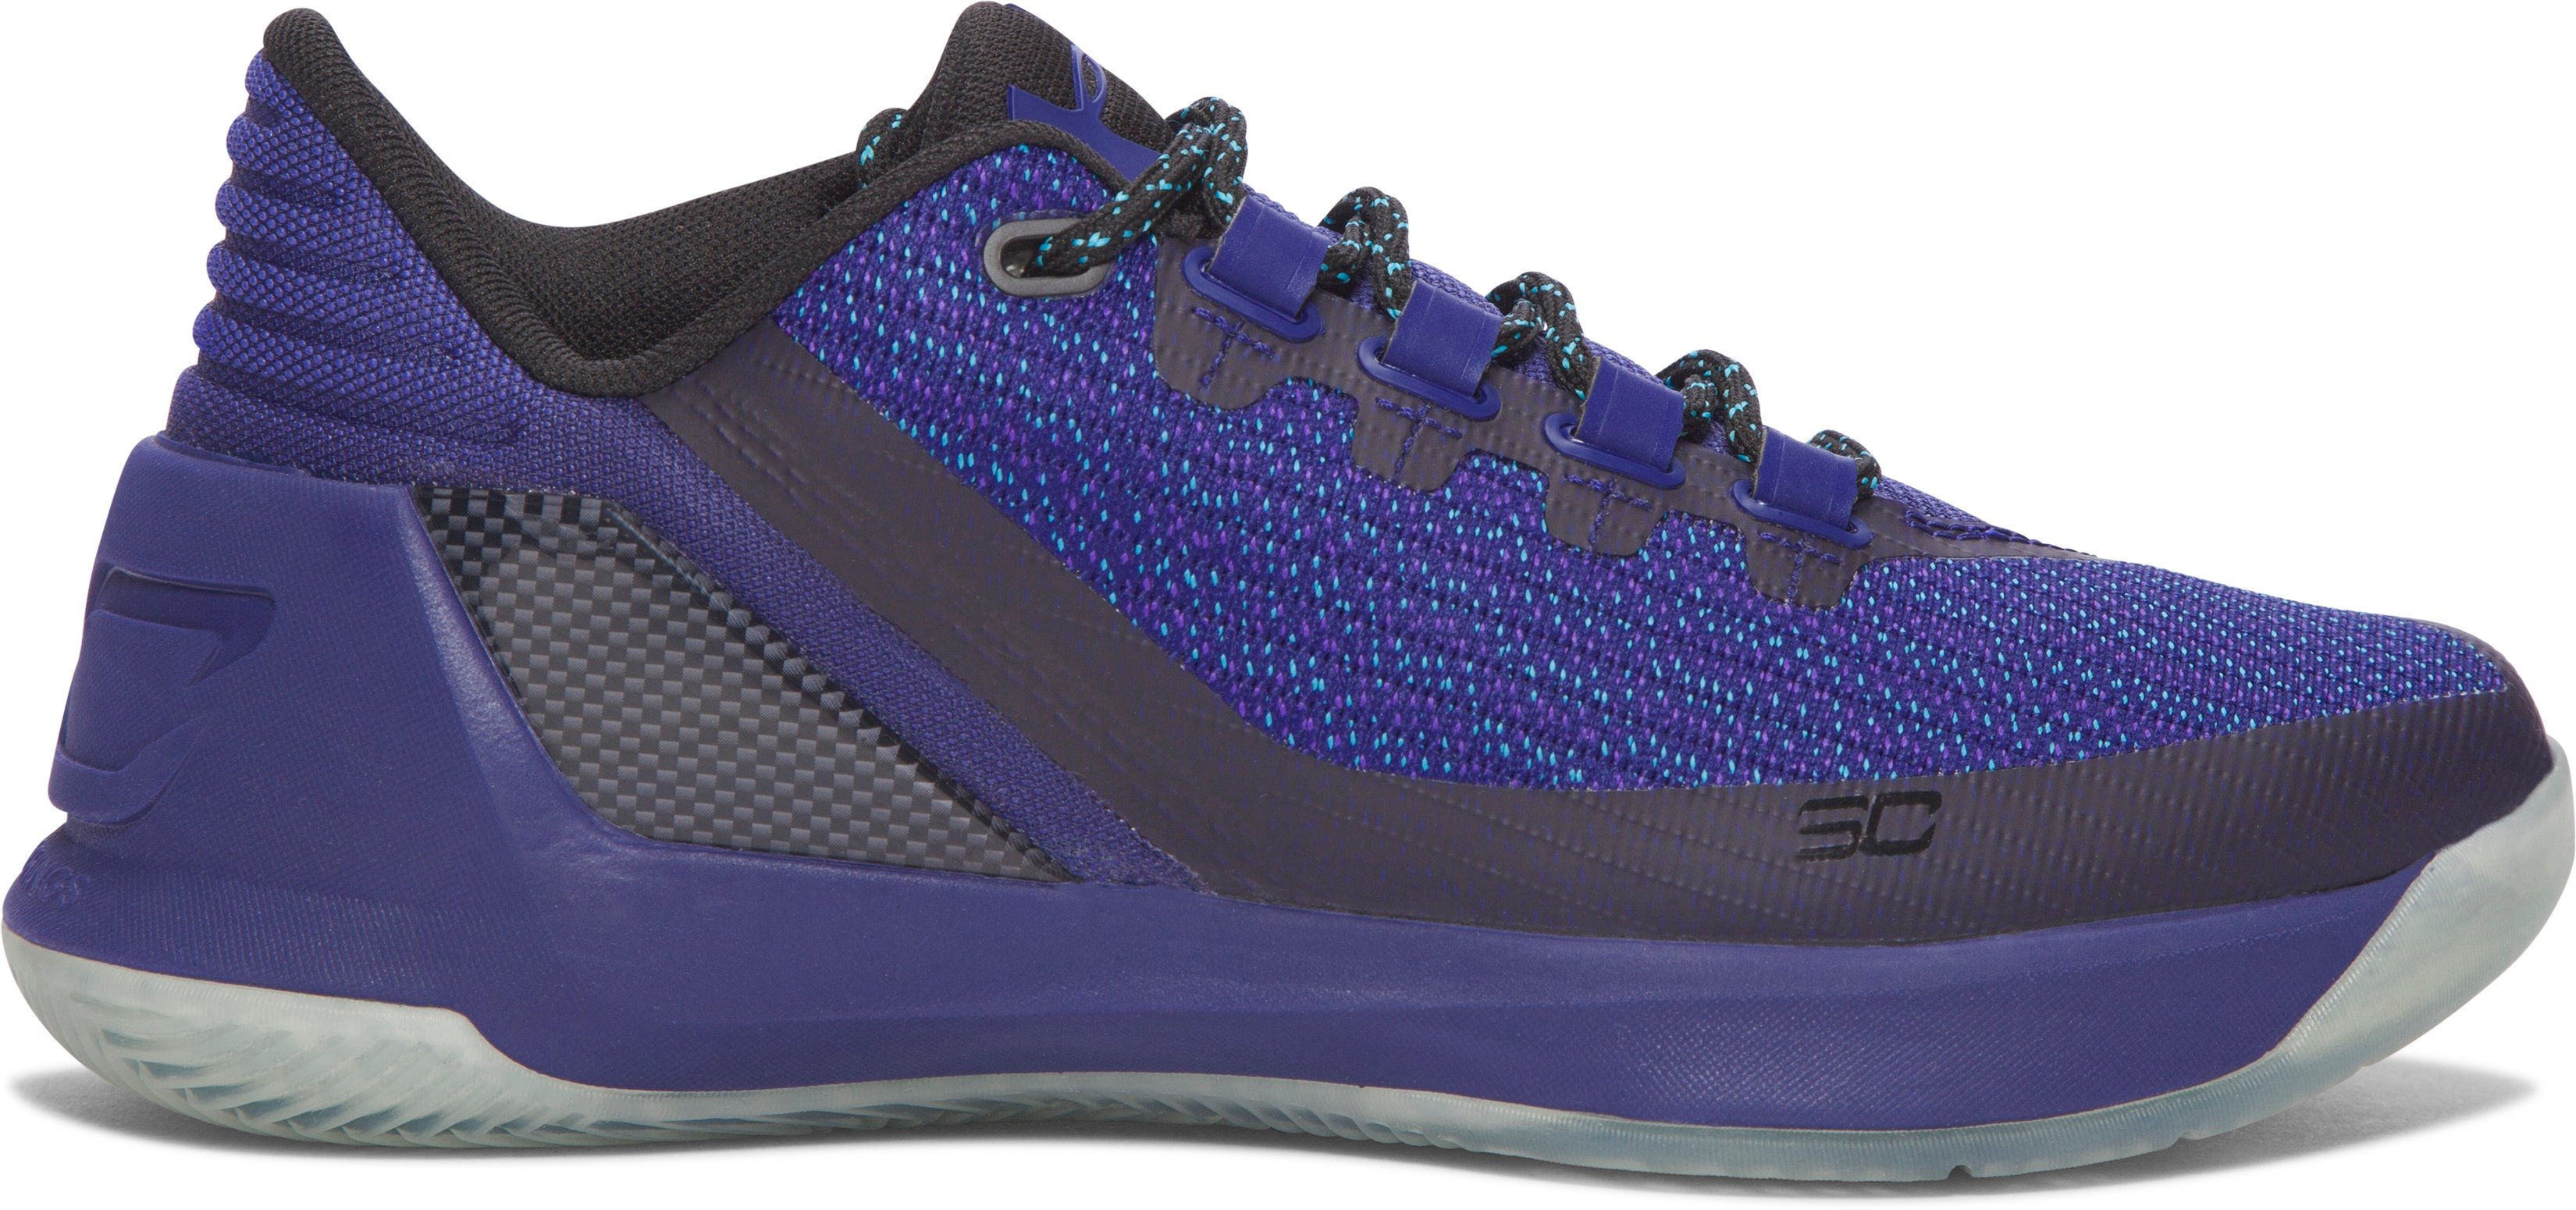 Boys' Grade School UA Curry 3 Low Basketball Shoes, EUROPA PURPLE, zoomed image